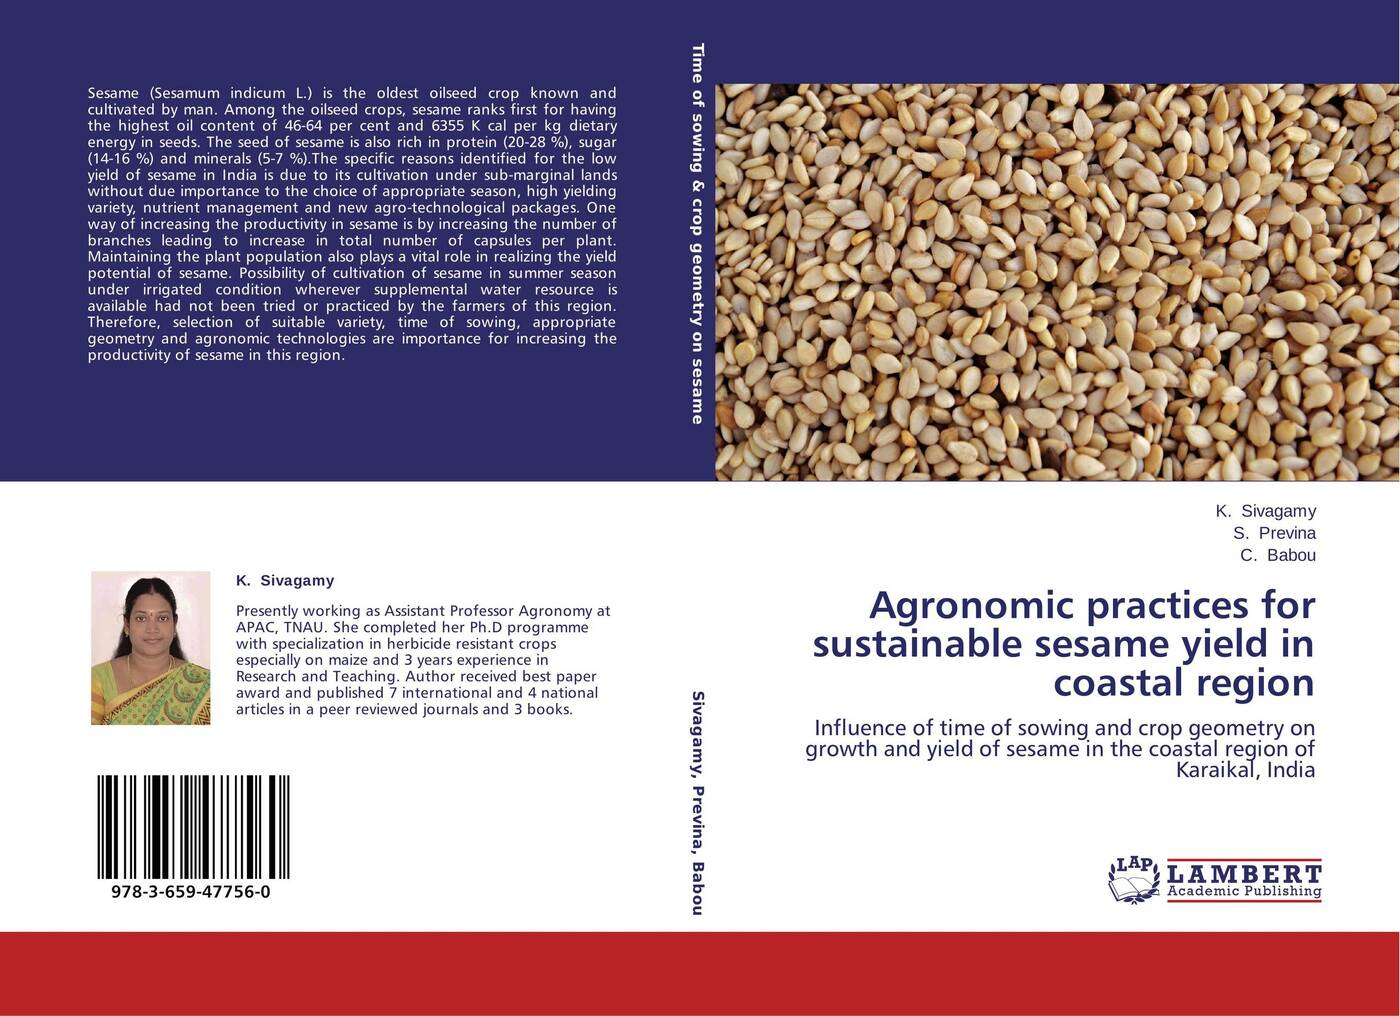 K. Sivagamy, S. Previna and C. Babou Agronomic practices for sustainable sesame yield in coastal region недорго, оригинальная цена